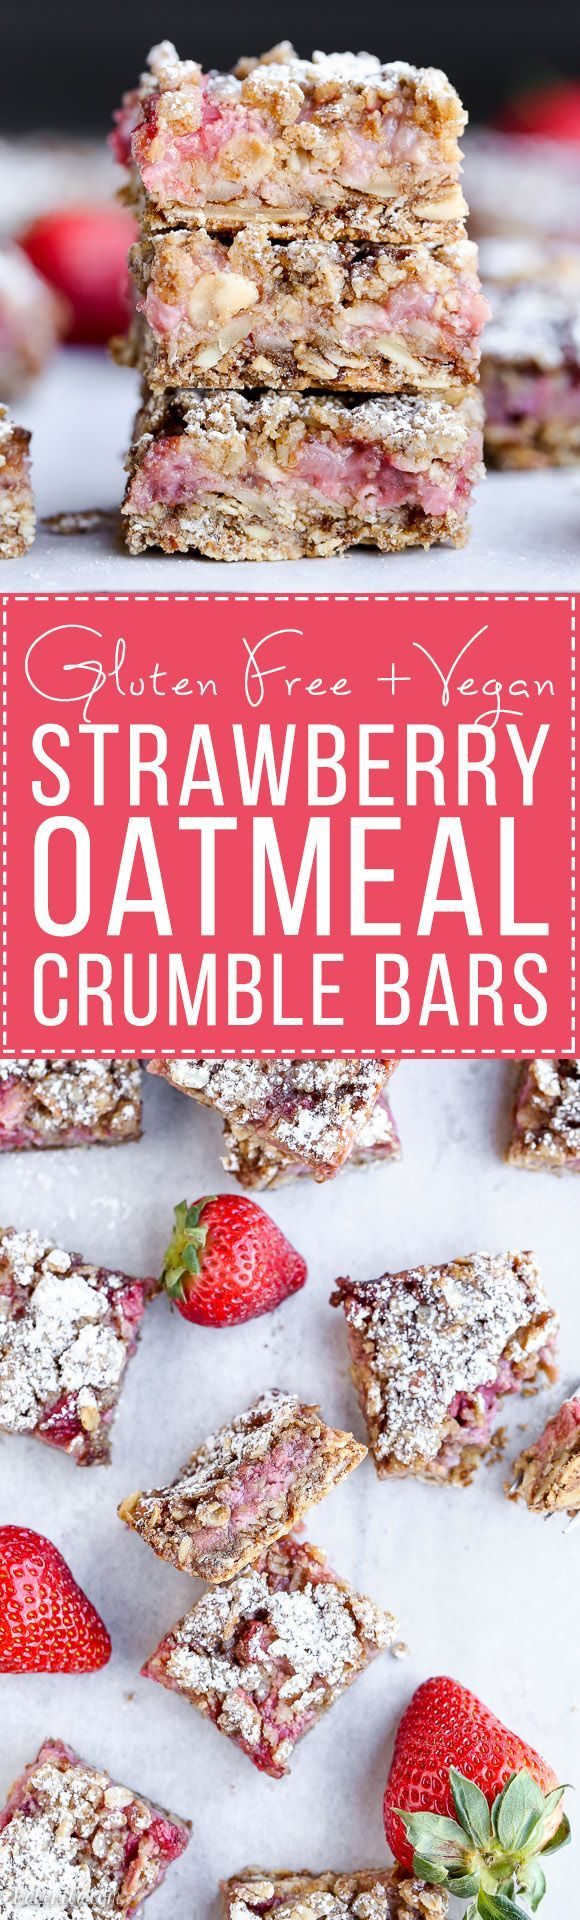 Crumble topping, Quick and easy recipes and Oatmeal on Pinterest